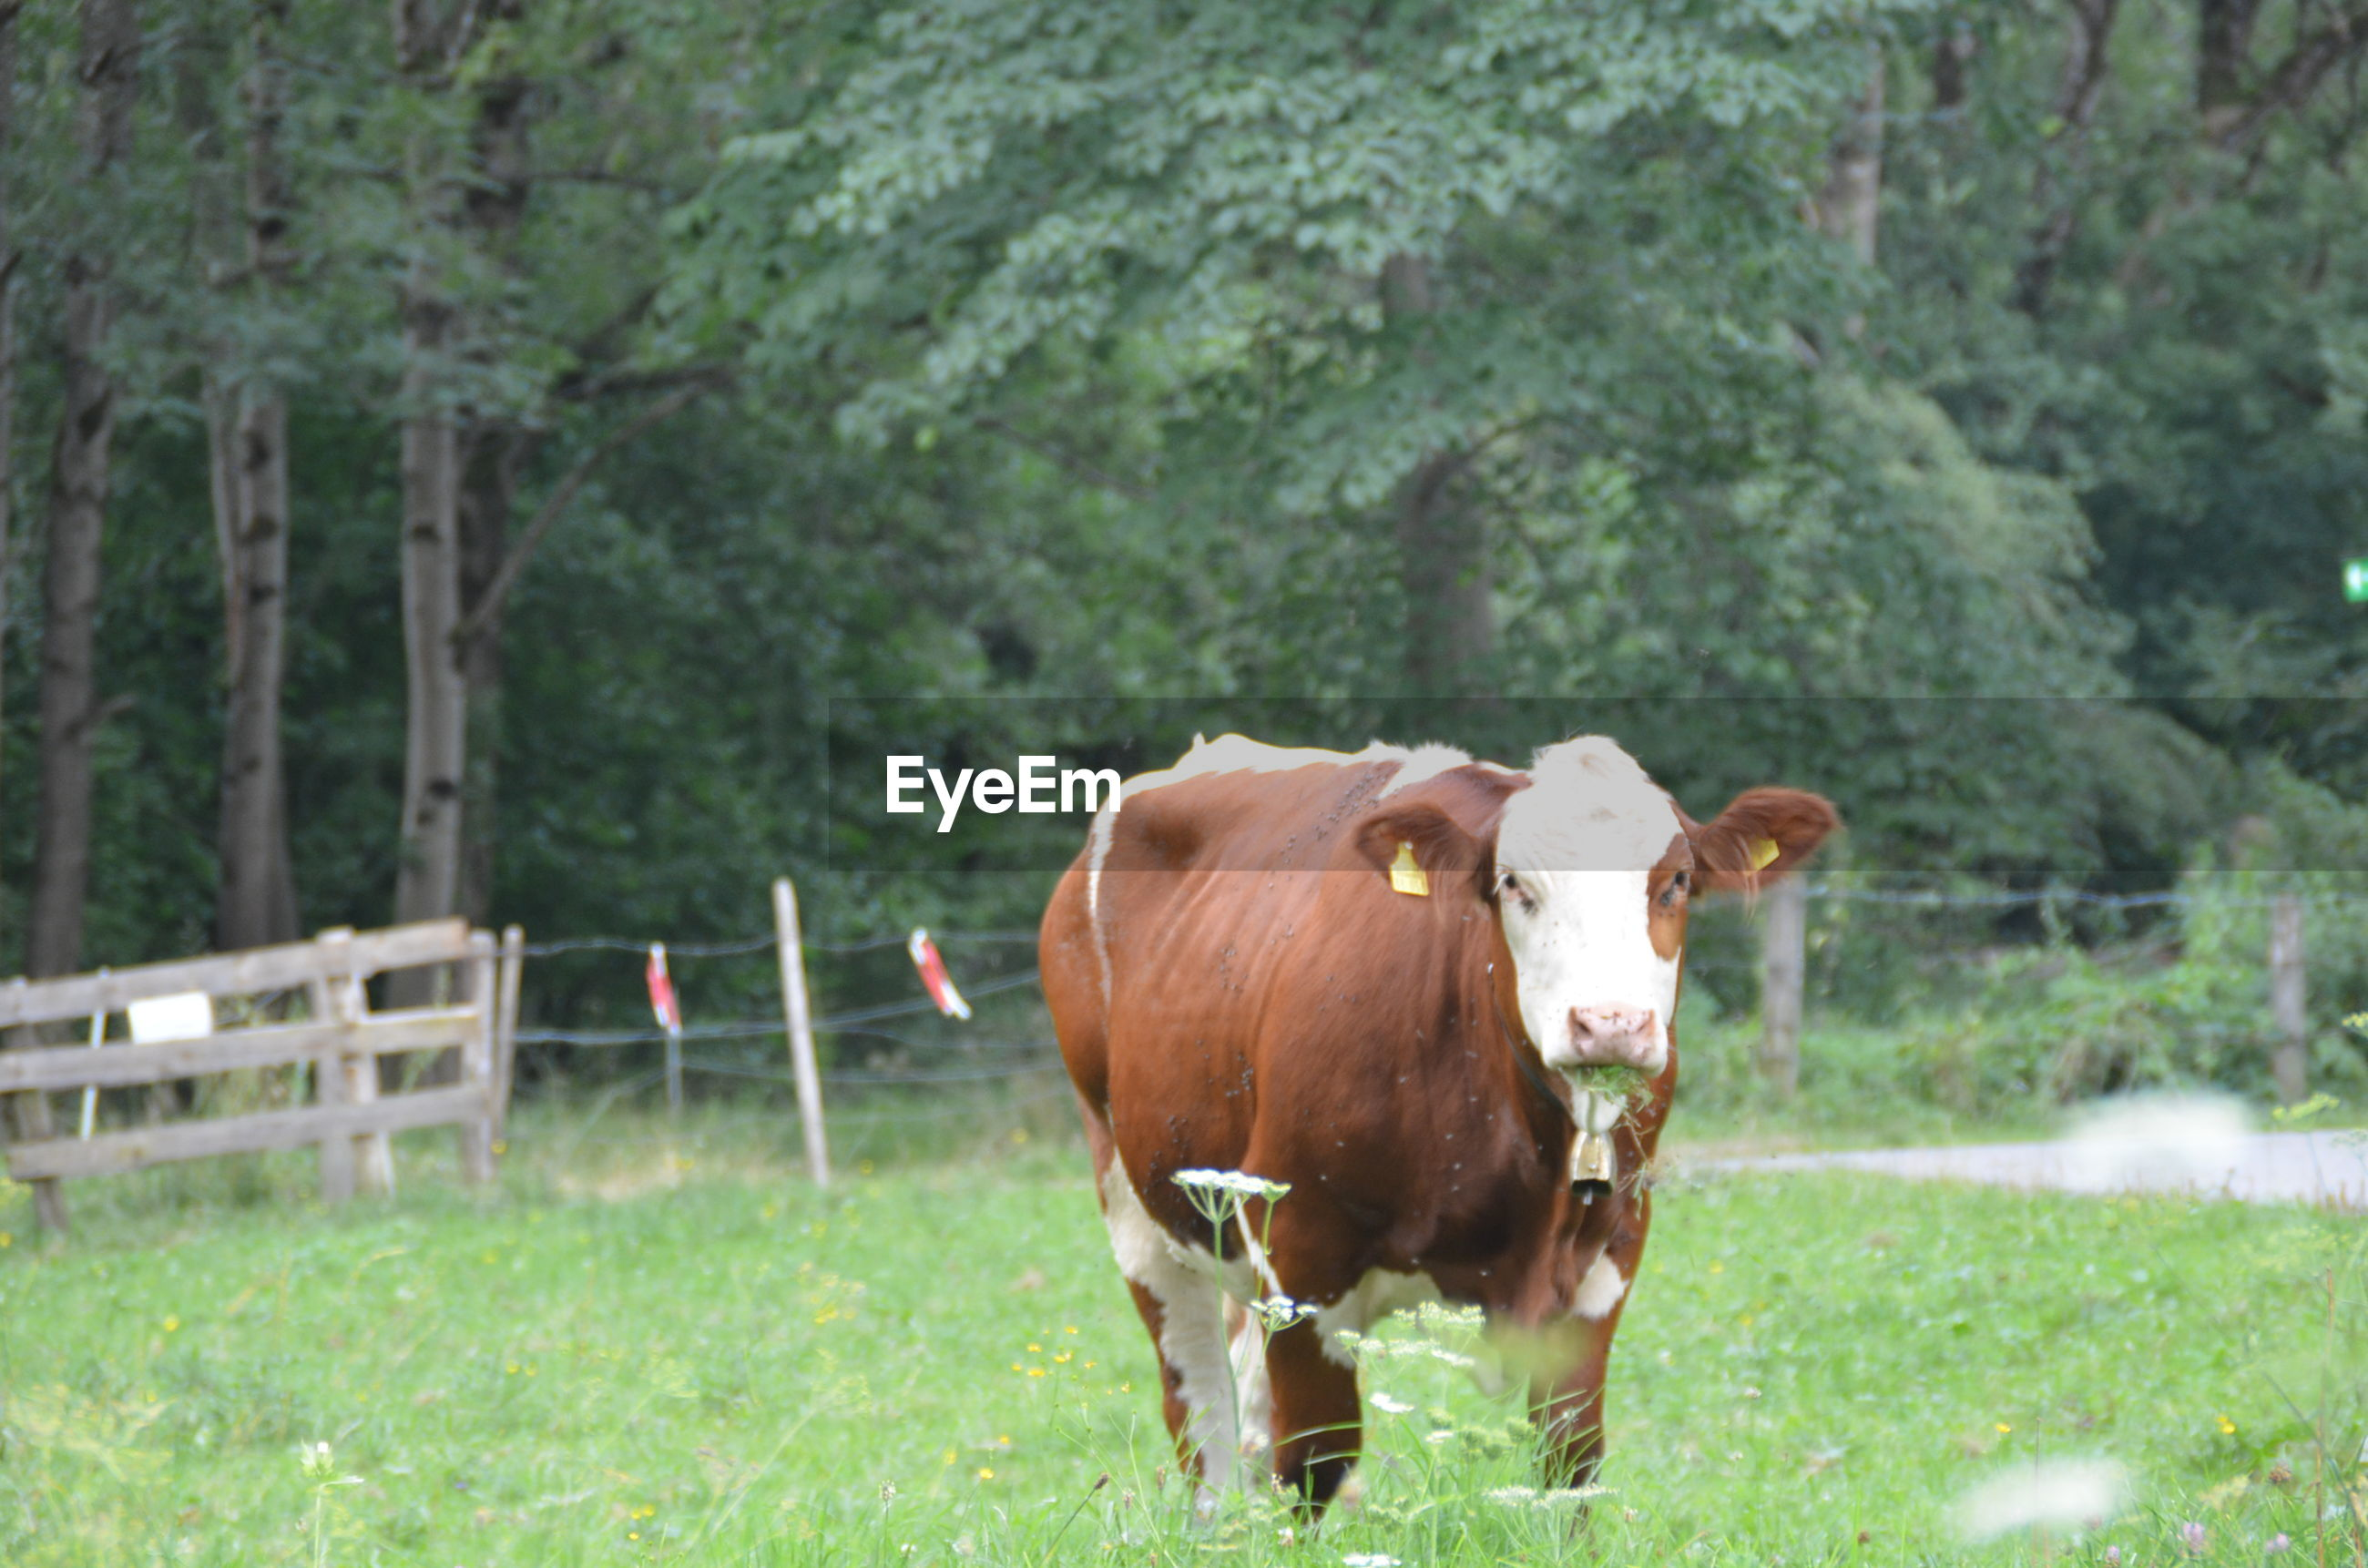 Portrait of cow standing on grassy land against trees